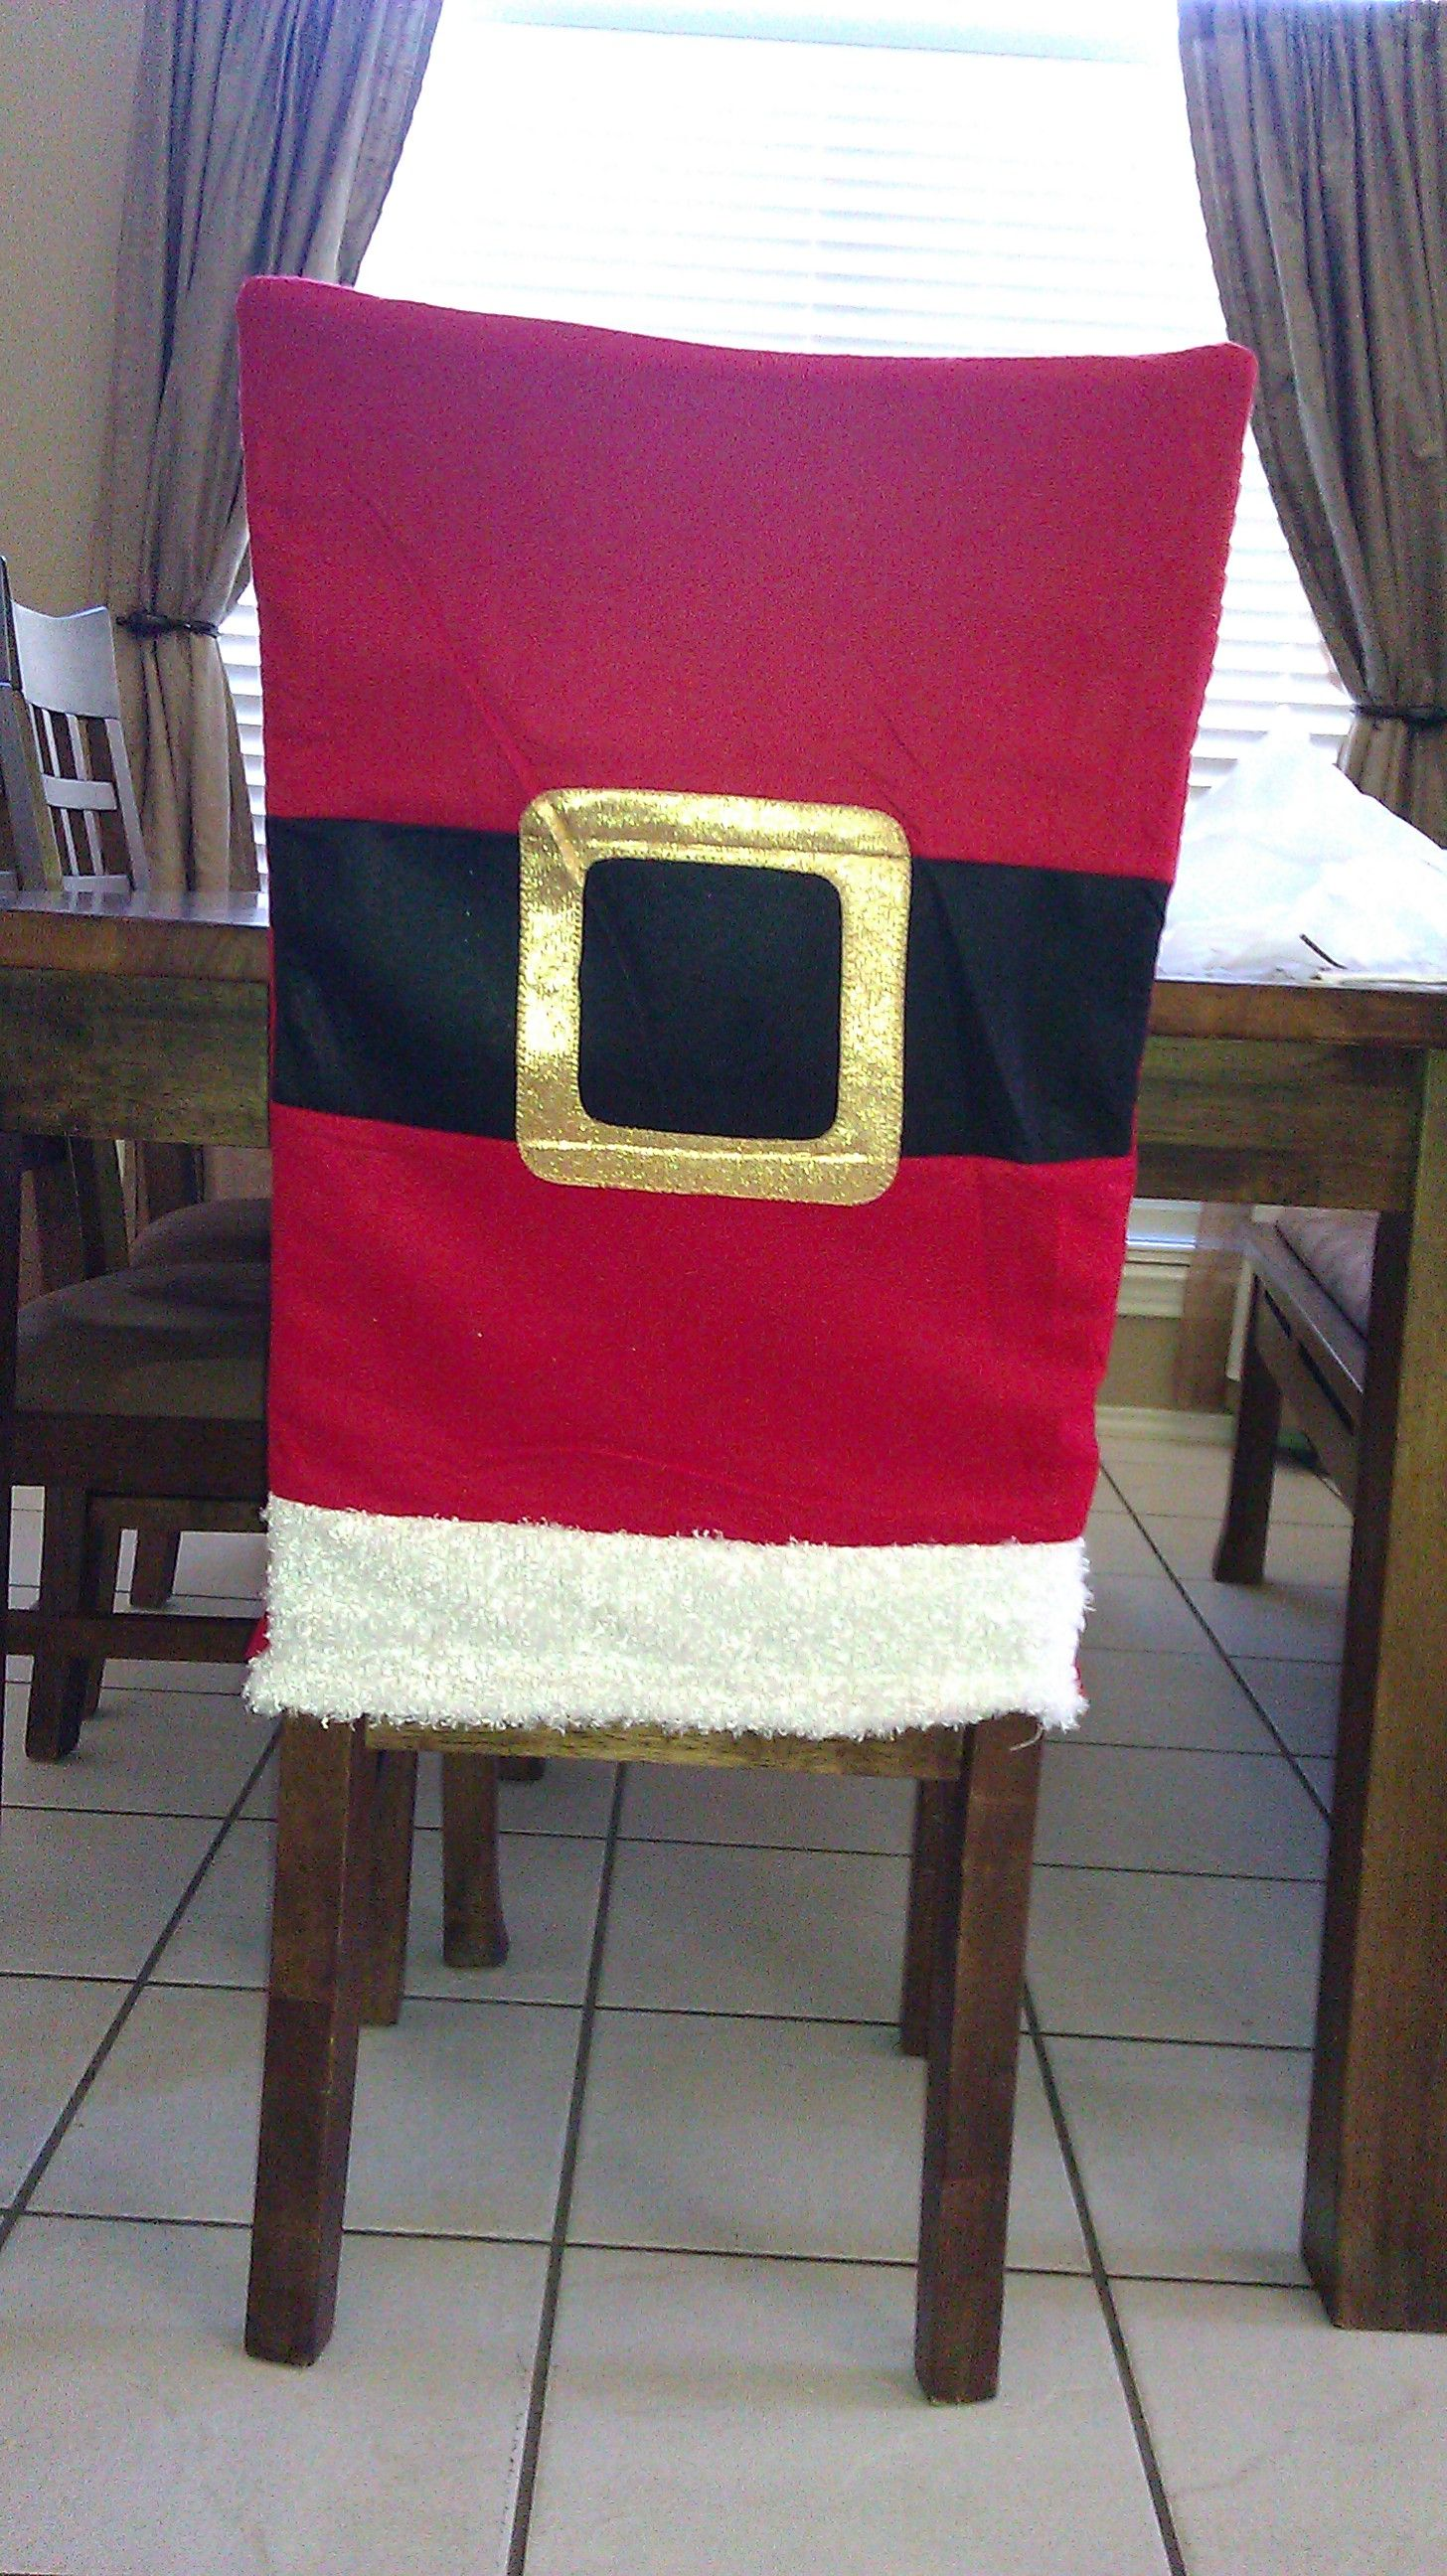 christmas chair covers pinterest papasan cover etsy santa felt gift bag from michaels turned upside down to make a back